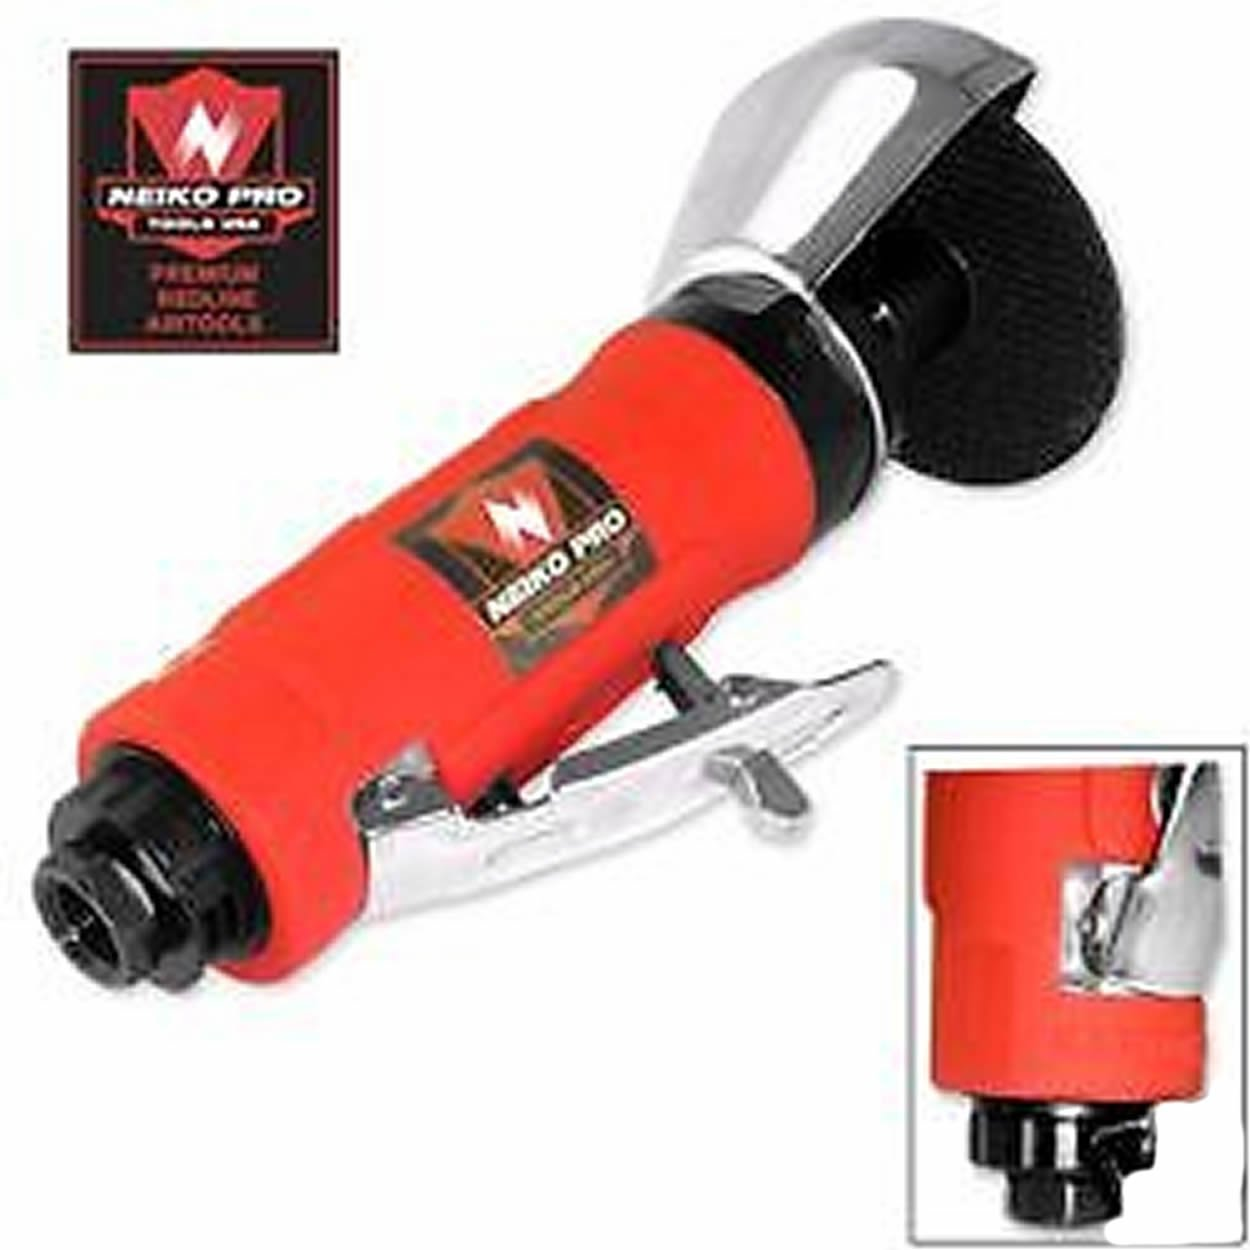 3'' Twin Bearing Spindle -air Cutter-1 Year Warranty